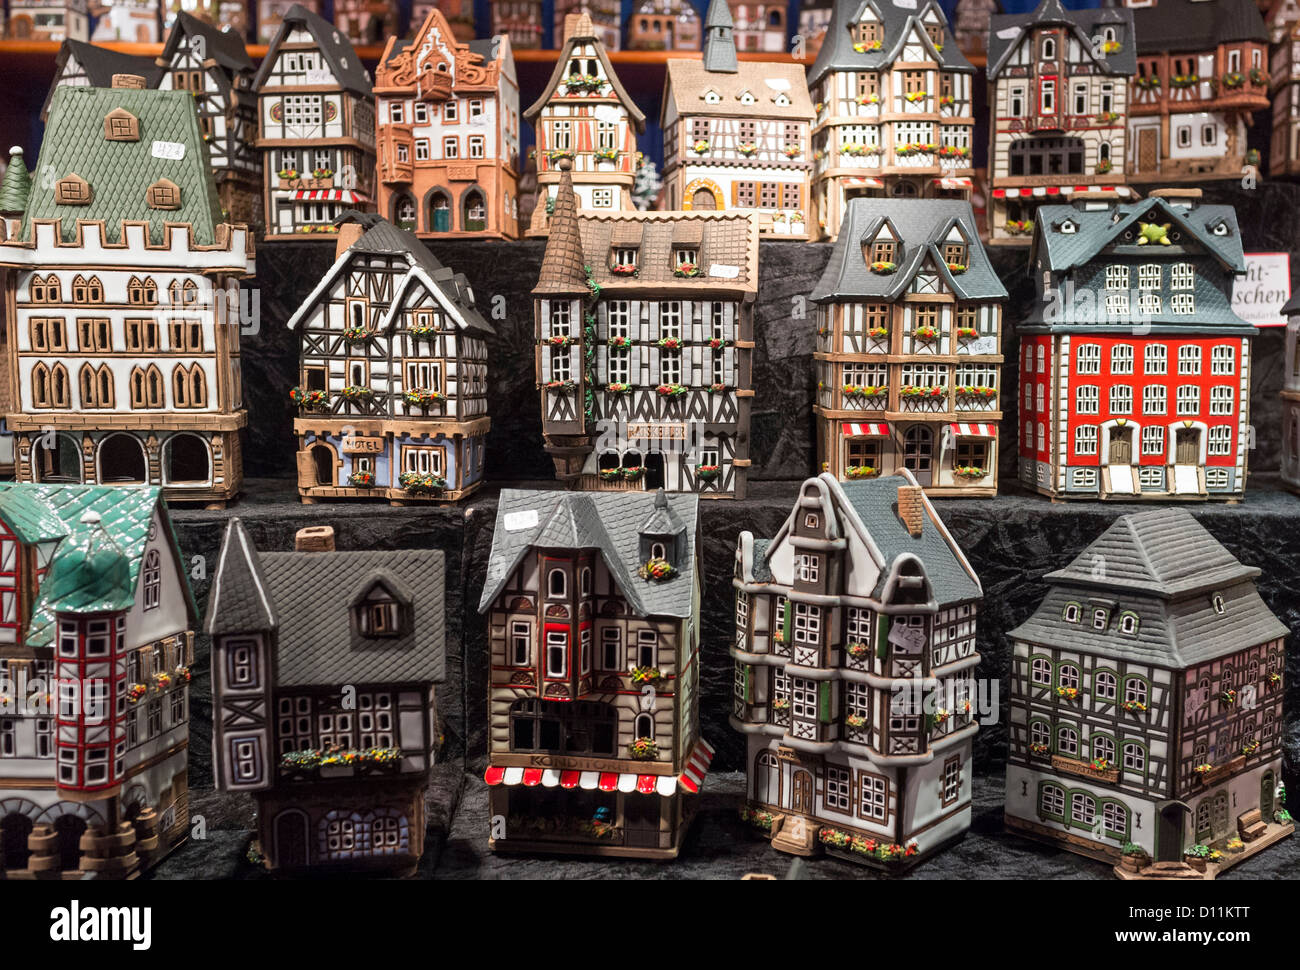 Traditional lanterns in shape of old model houses for sale on craft stall in Cologne Christmas Market in Germany - Stock Image